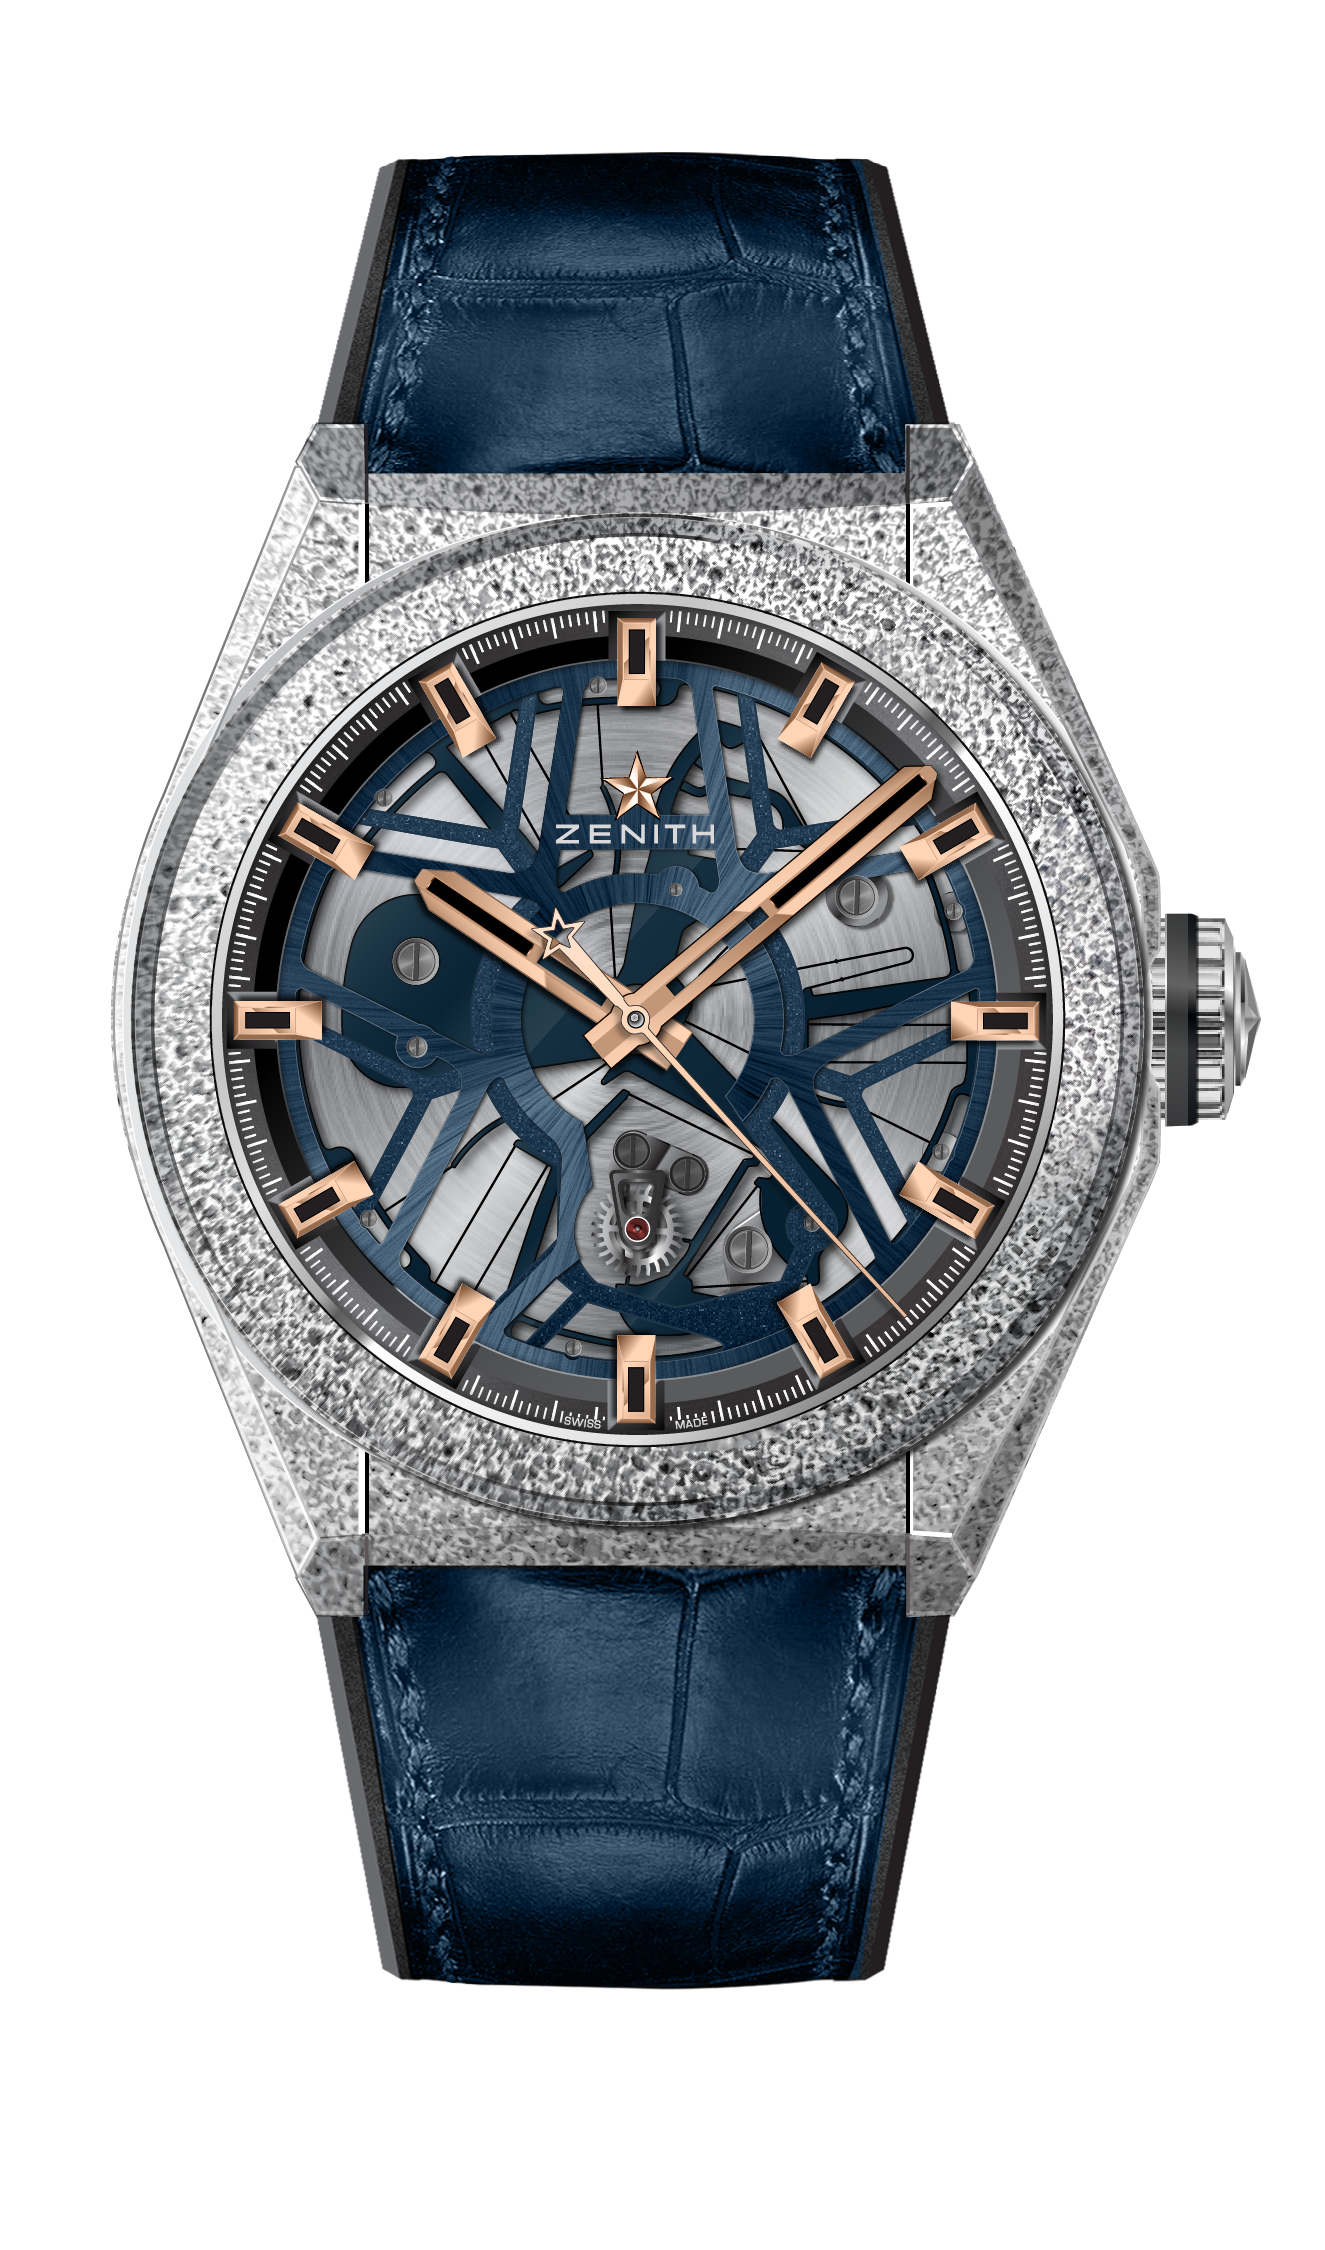 ZENITH Defy Lab B 6 Blue Rose Gold